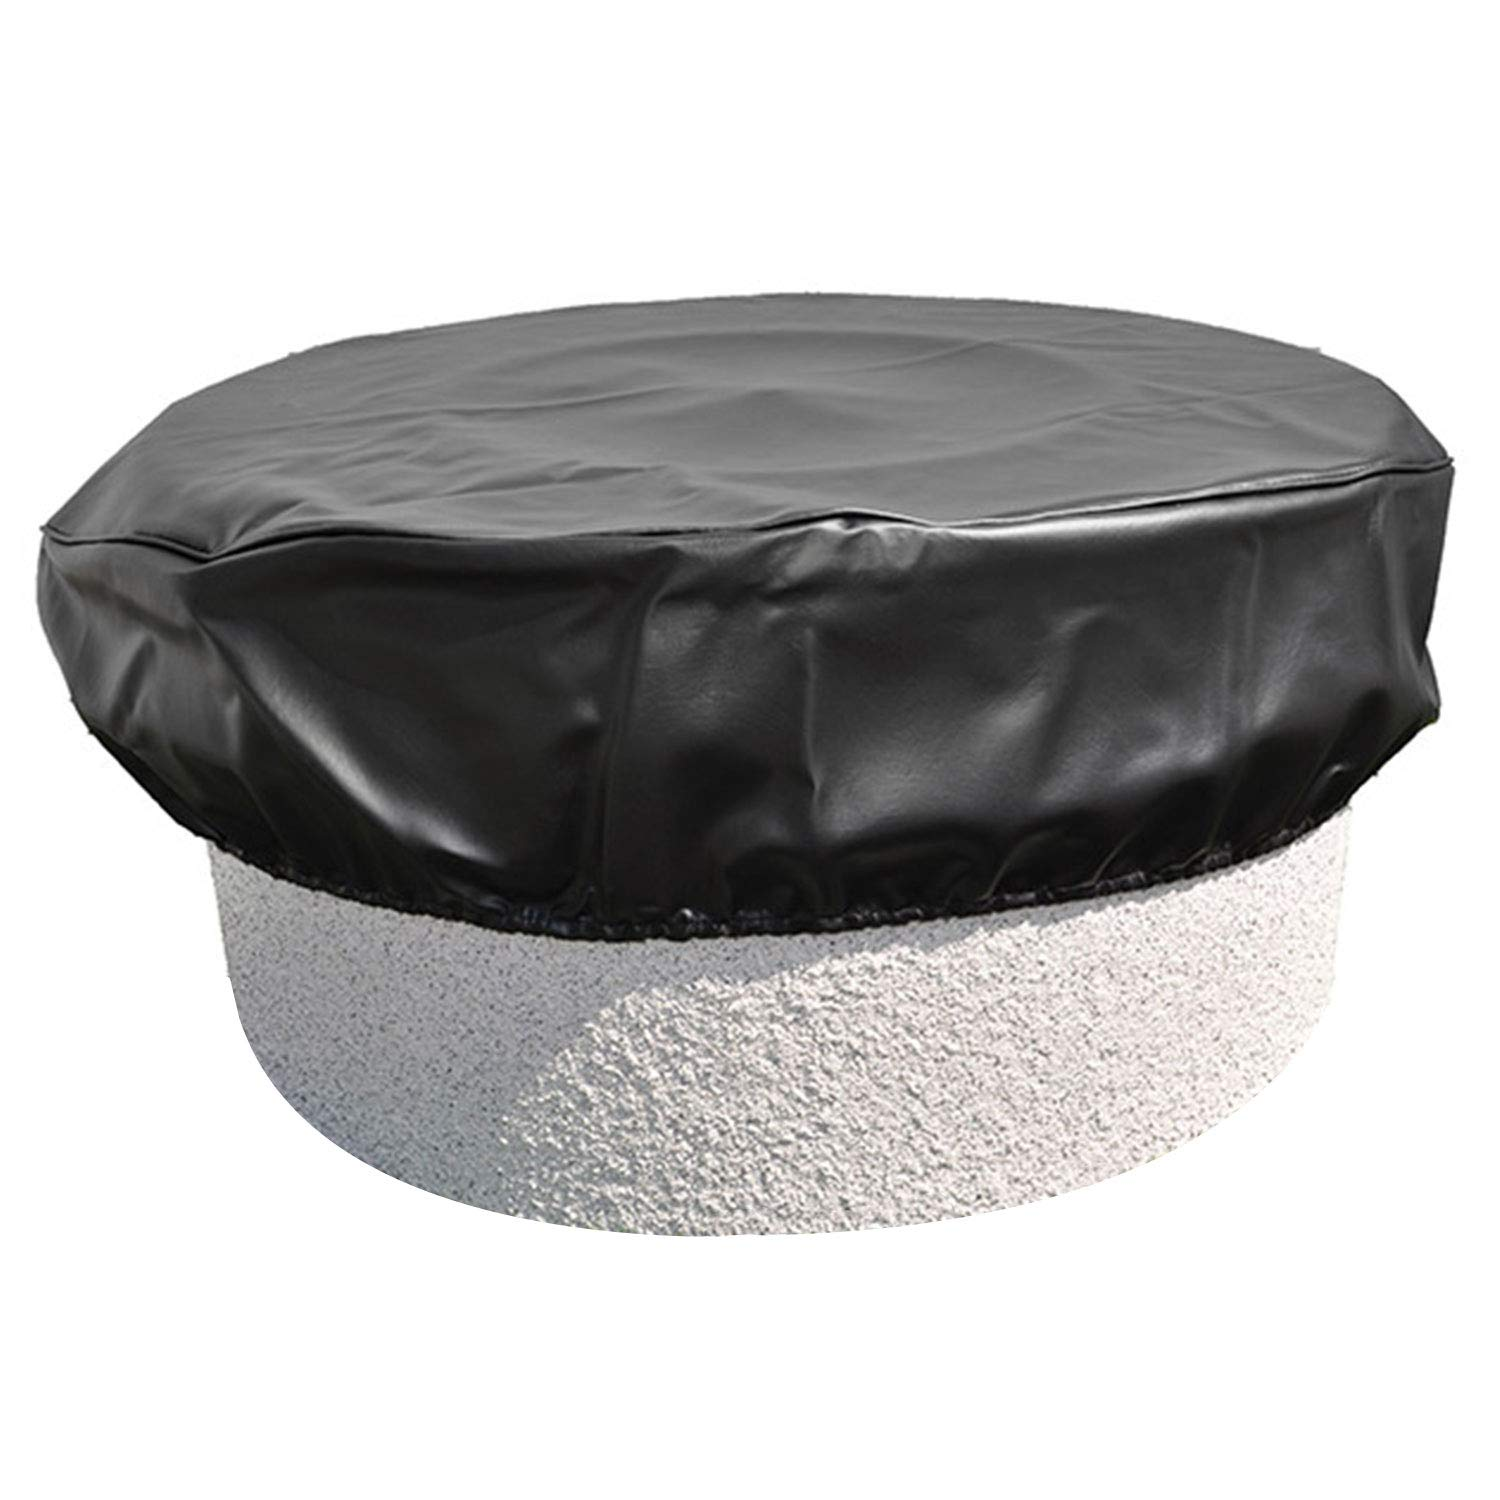 Hearth Products Controls (HPC) Black Vinyl Fire Pit Cover (FPC-53), Round, 53-Inch by Hearth Products Controls